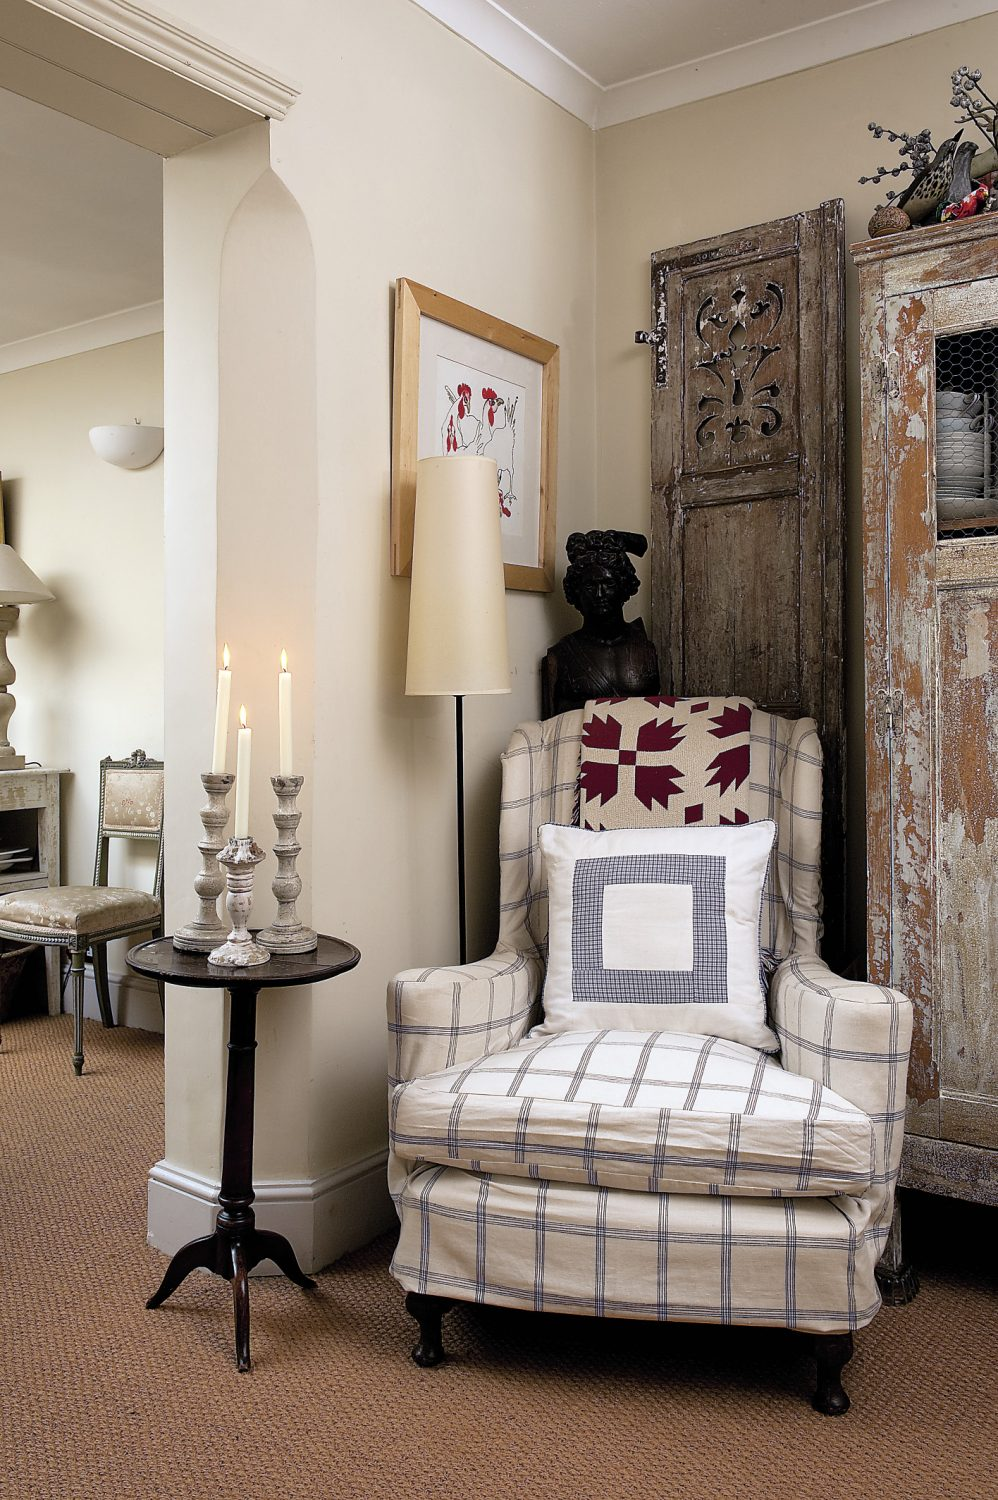 At the other end of the dining area stands a small 18th century table: the first piece James bought when leaving college